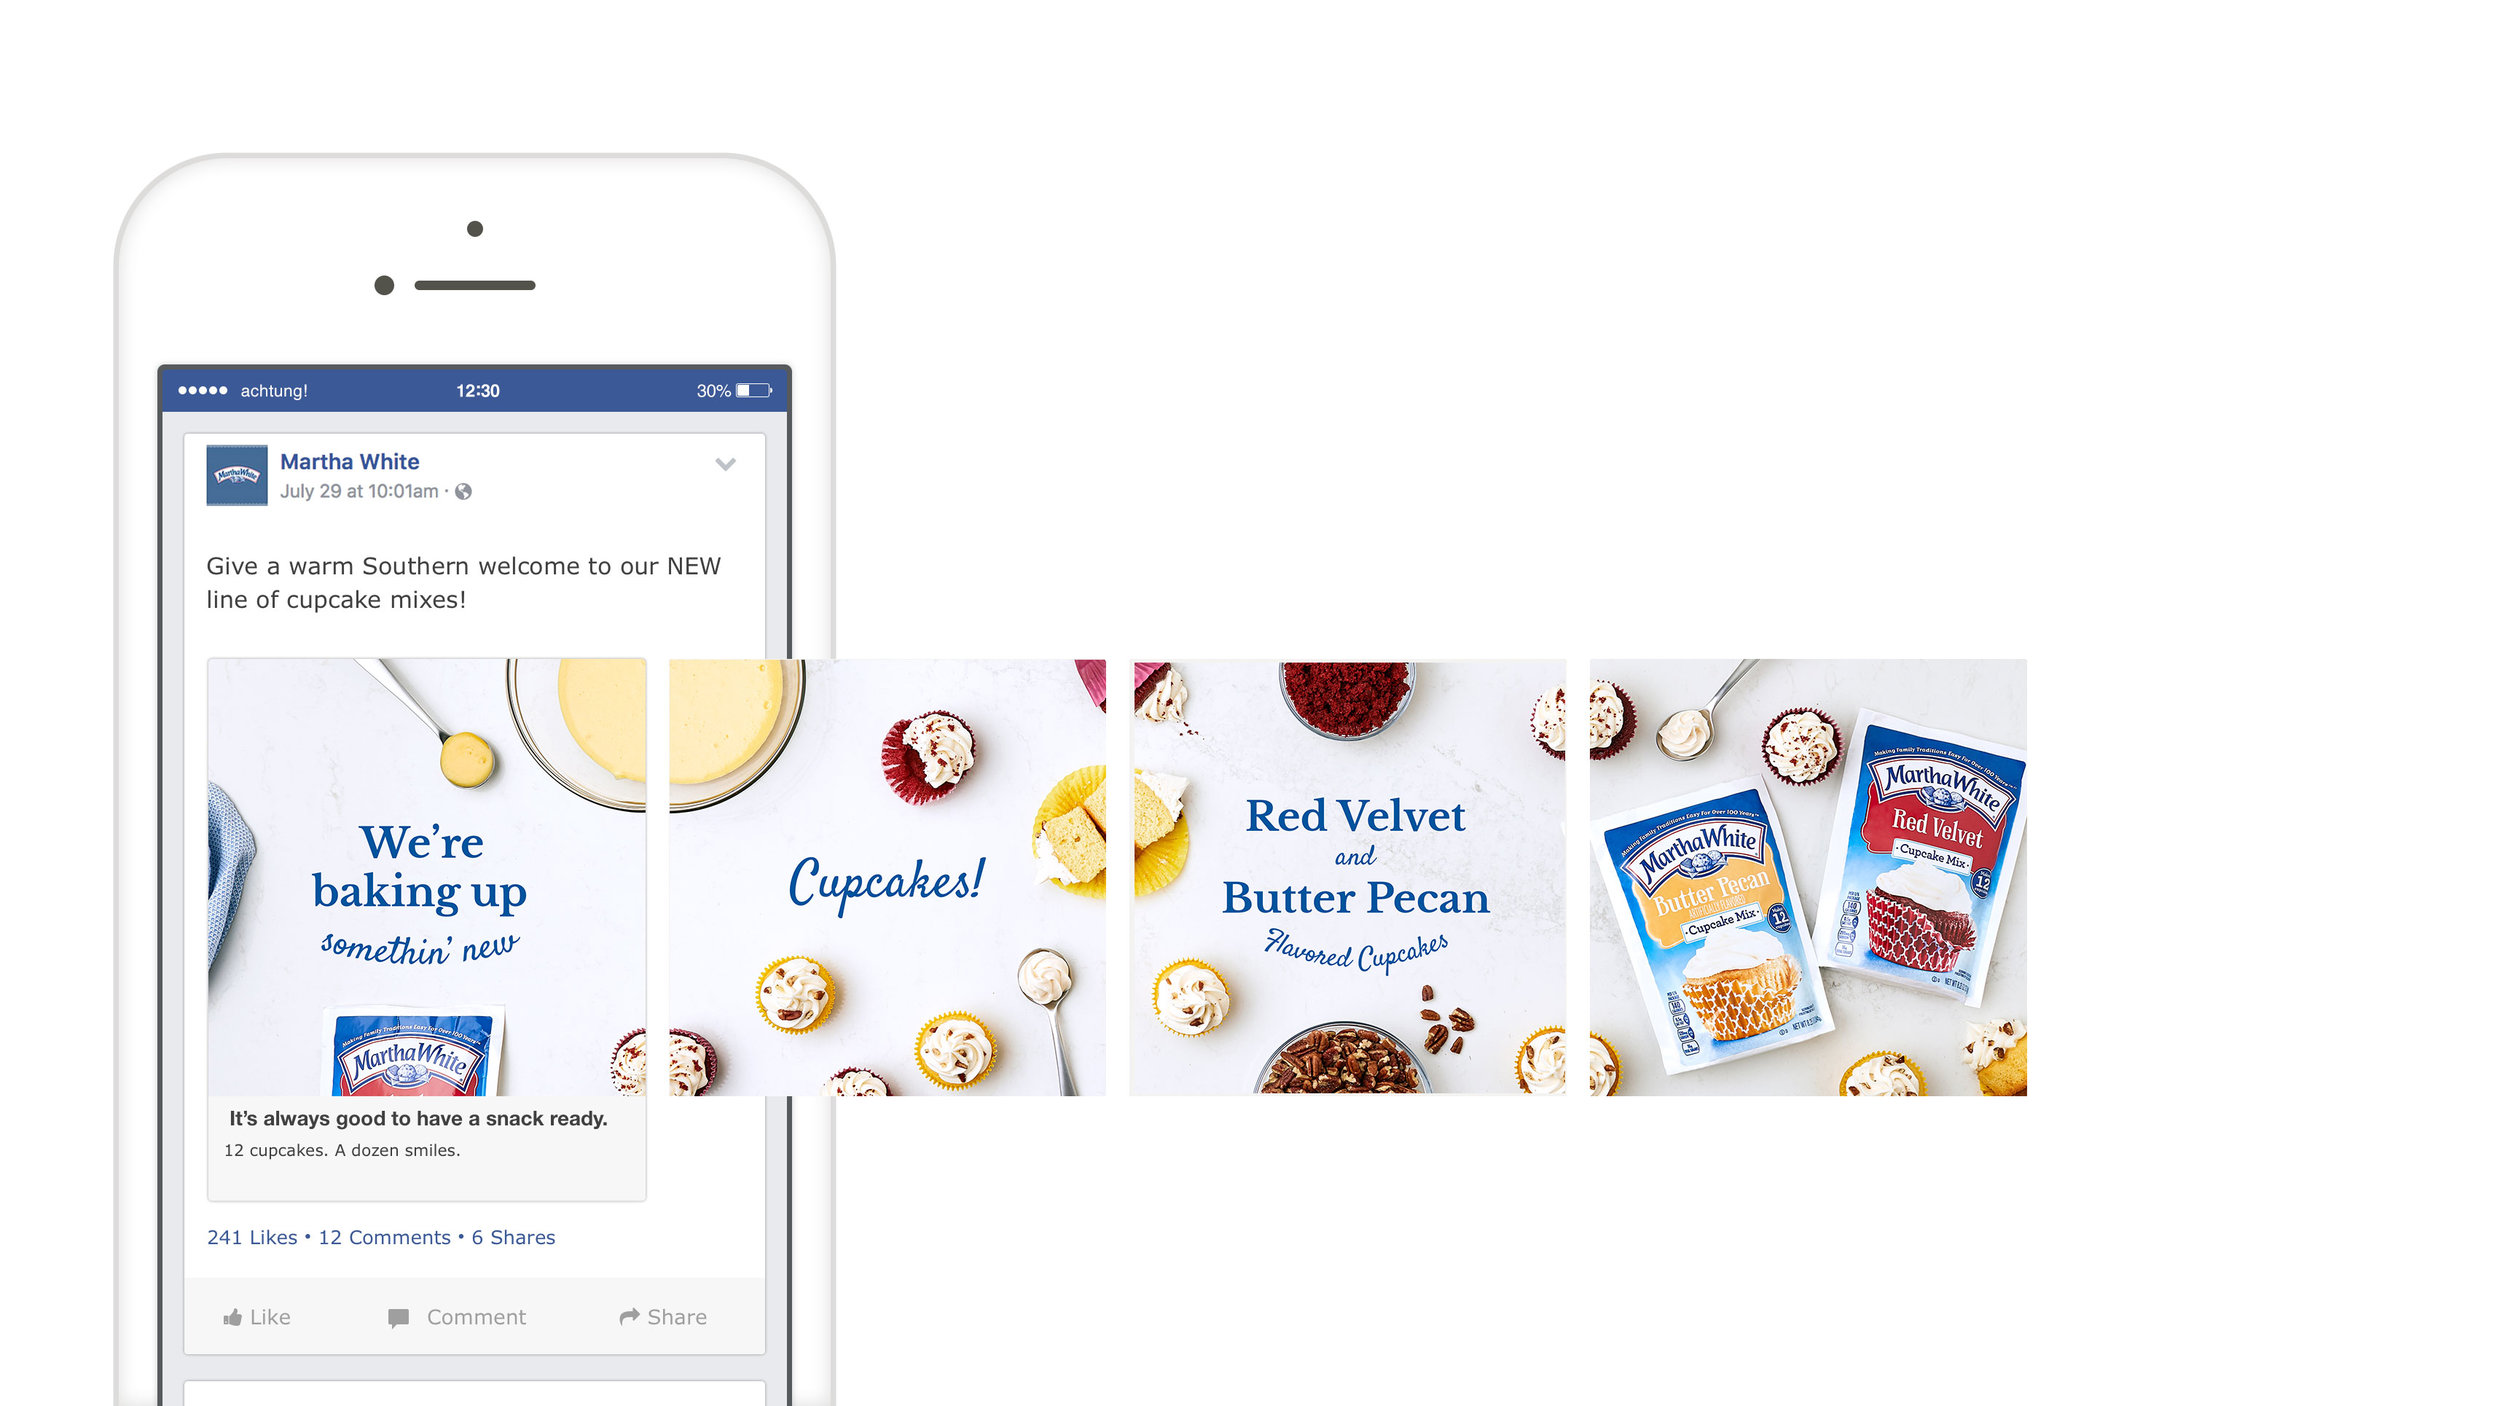 CAROUSEL AD    Using one panoramic image, this concept inspires the user to scroll to the right and discover the new product and flavors themselves.